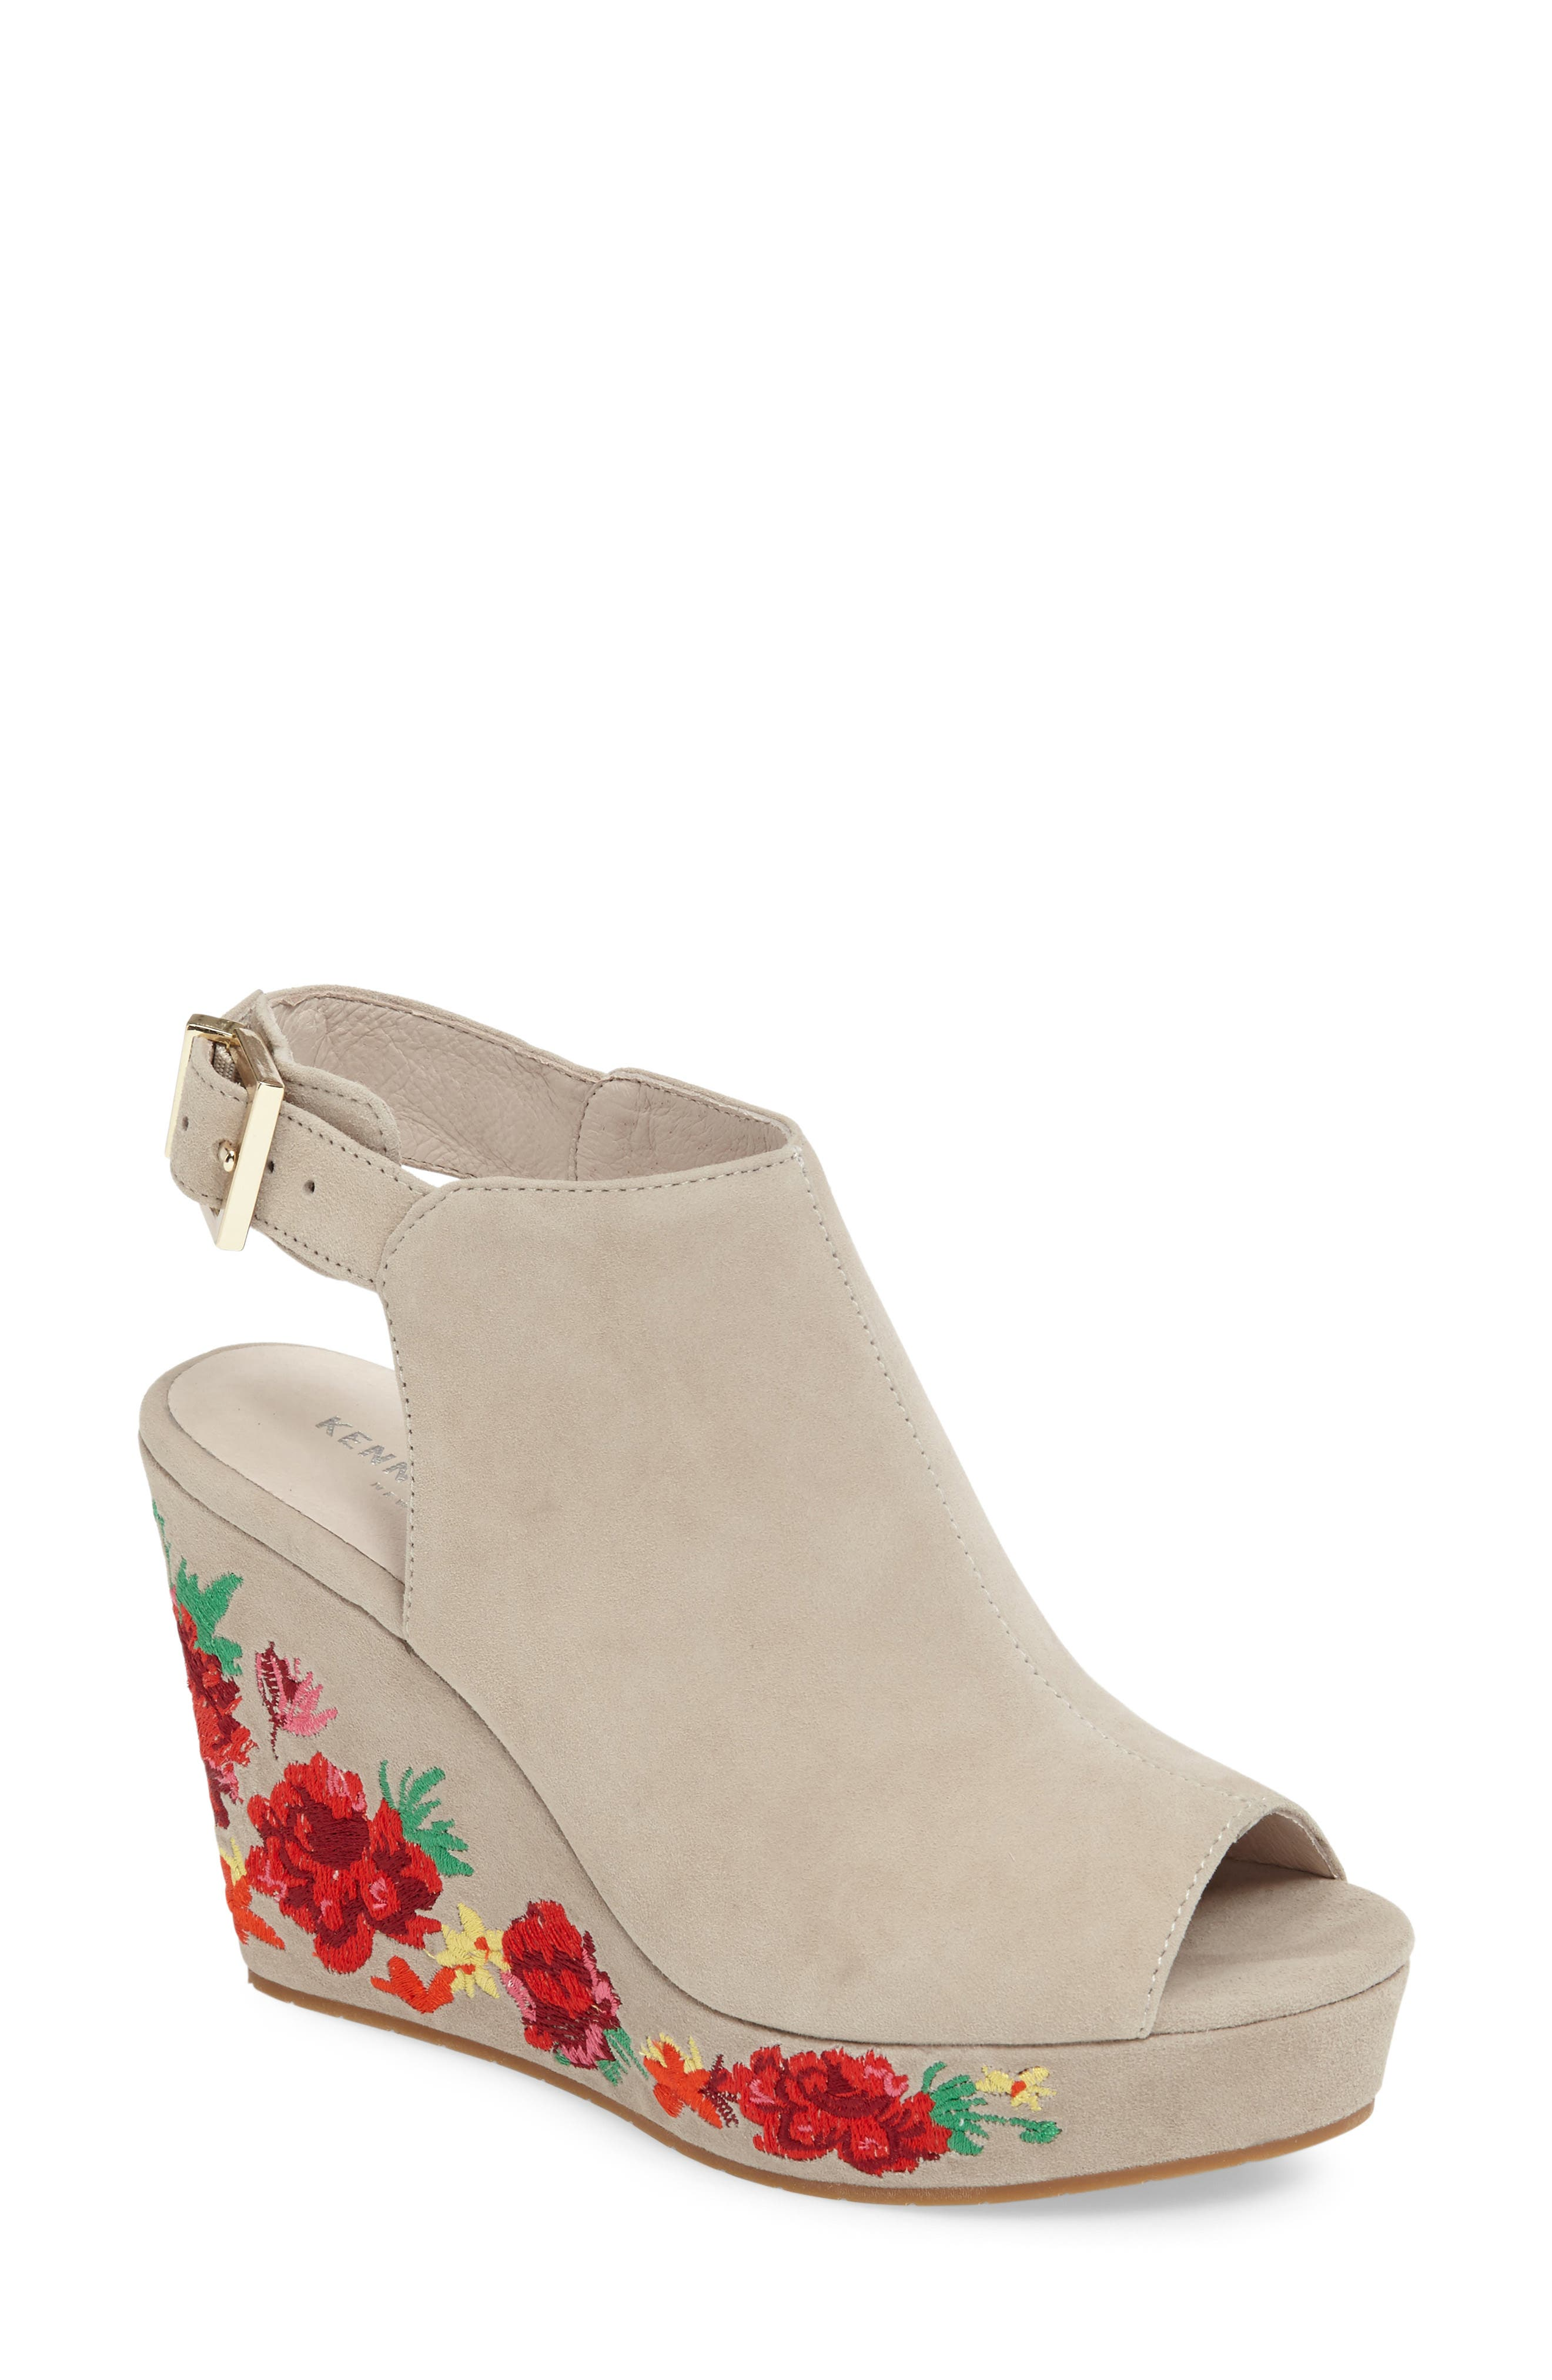 Olani Embroidered Wedge Sandal,                         Main,                         color, Taupe Suede